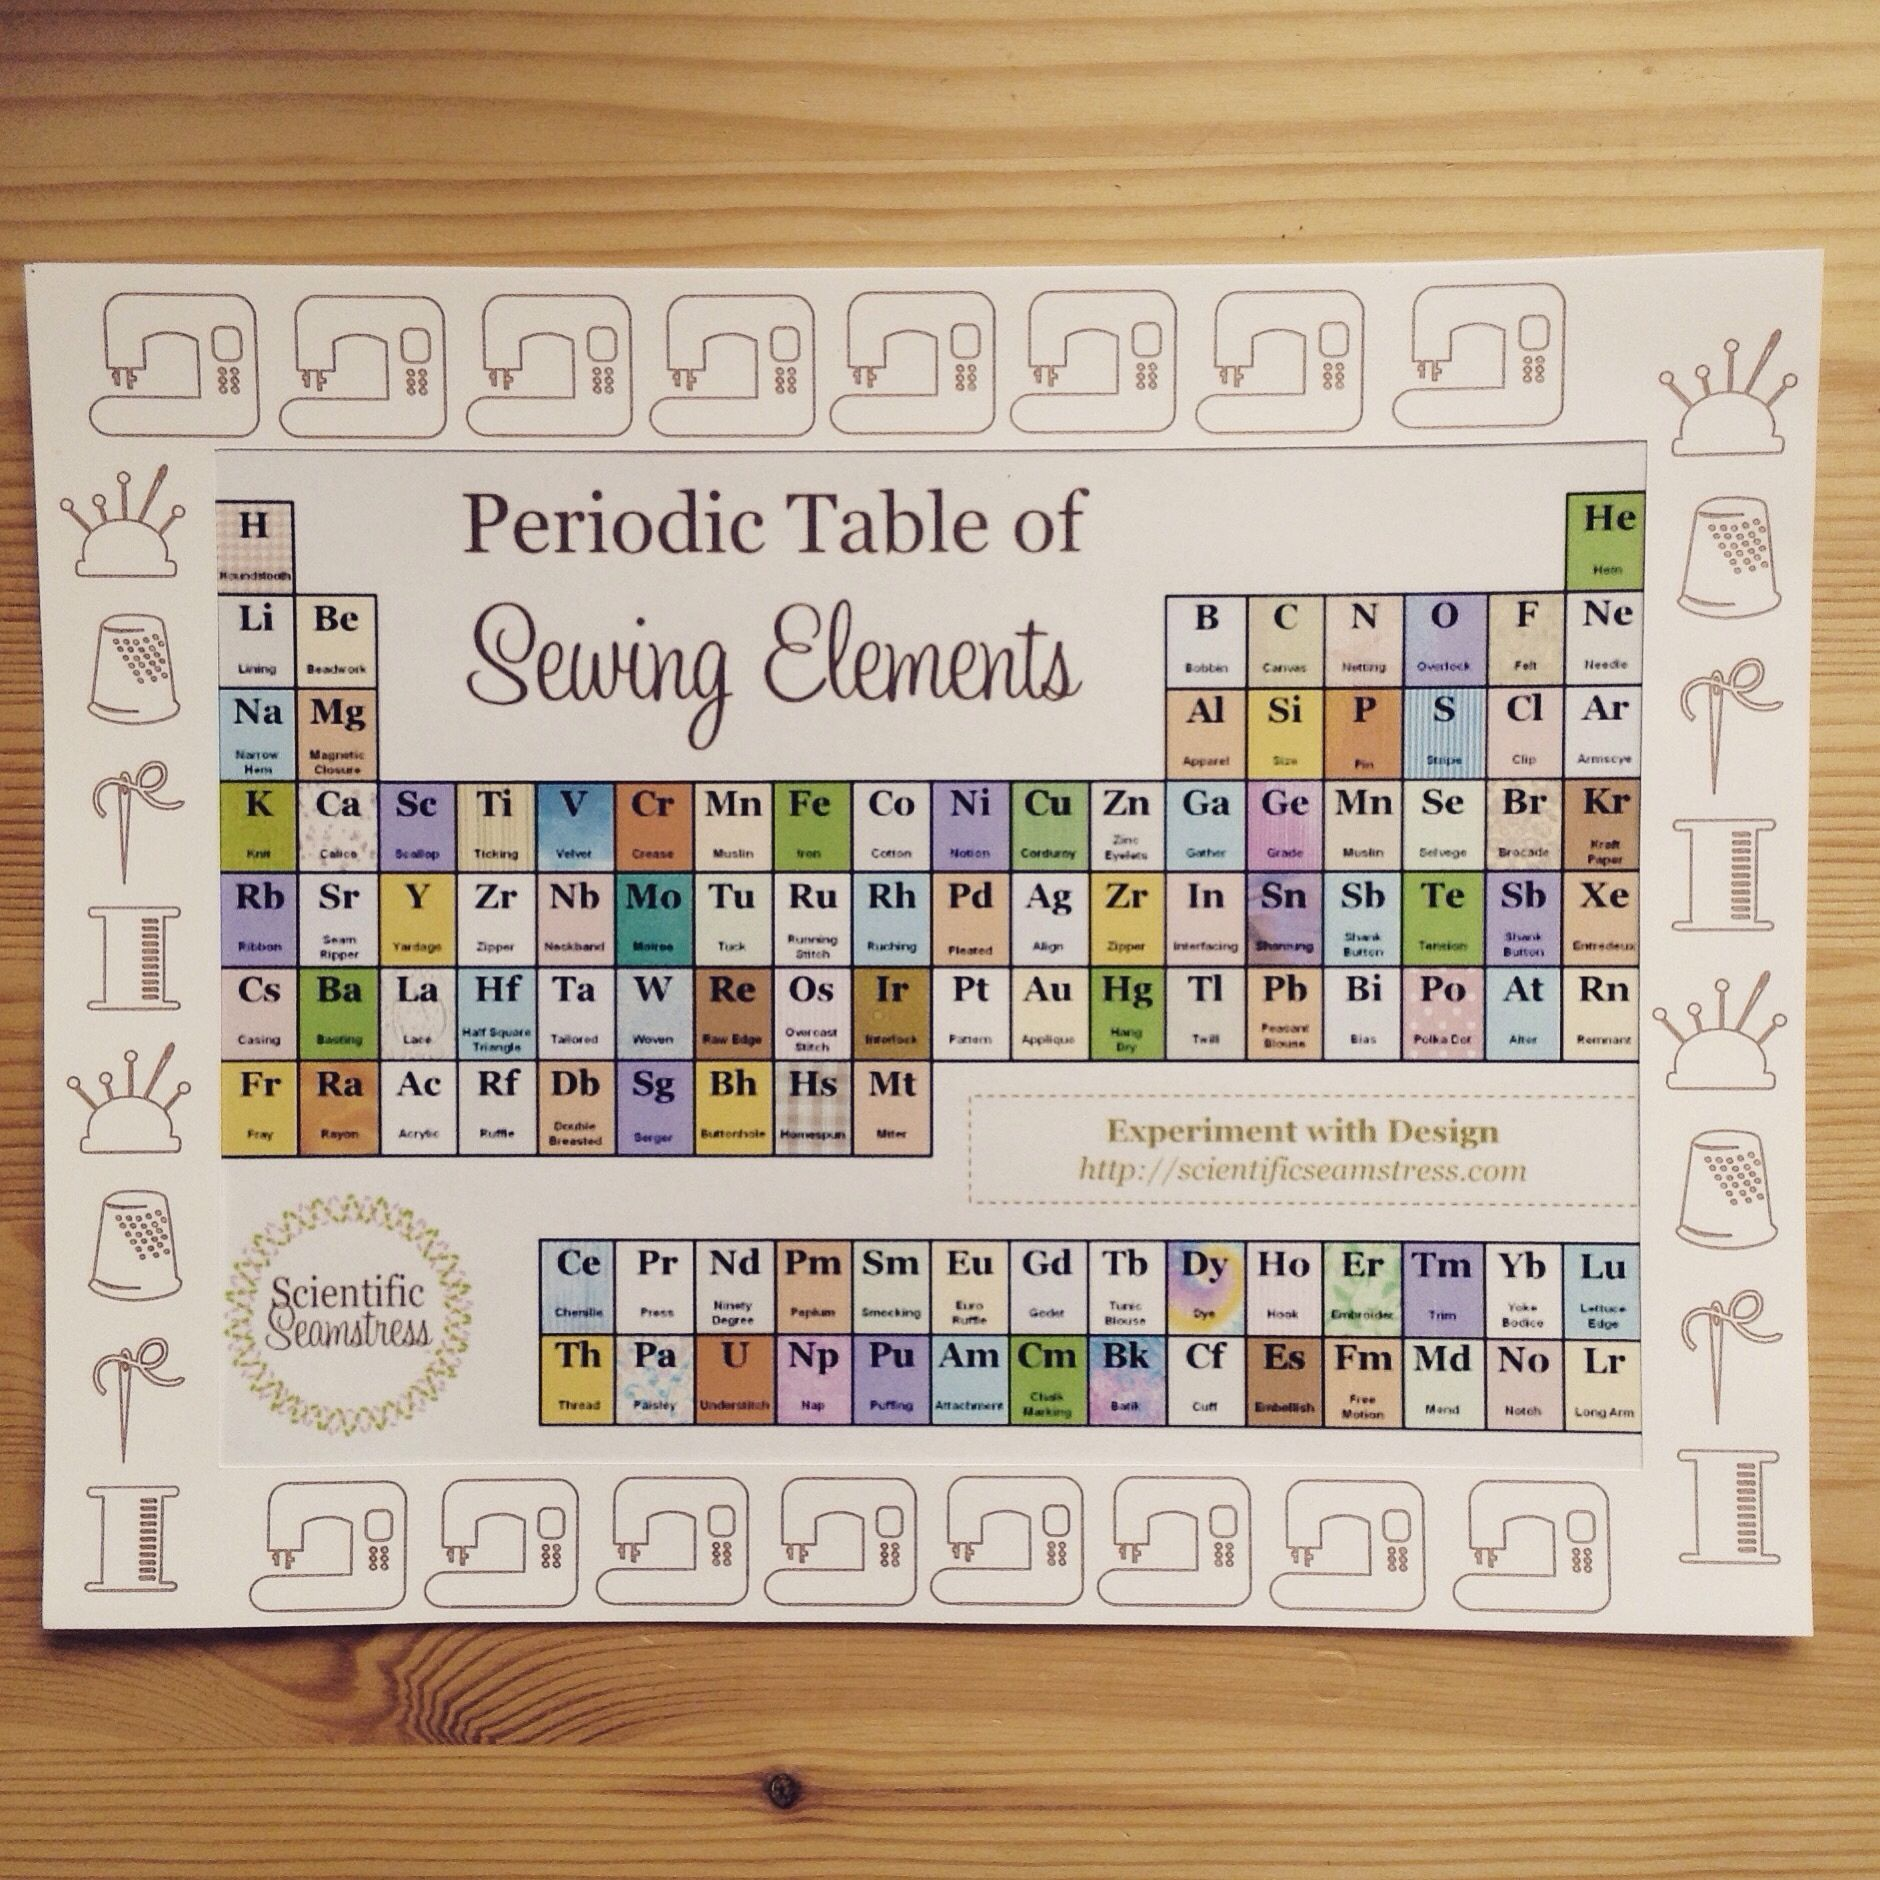 Periodic table of sewing elements sew and tell periodic table of sewing elements gamestrikefo Choice Image